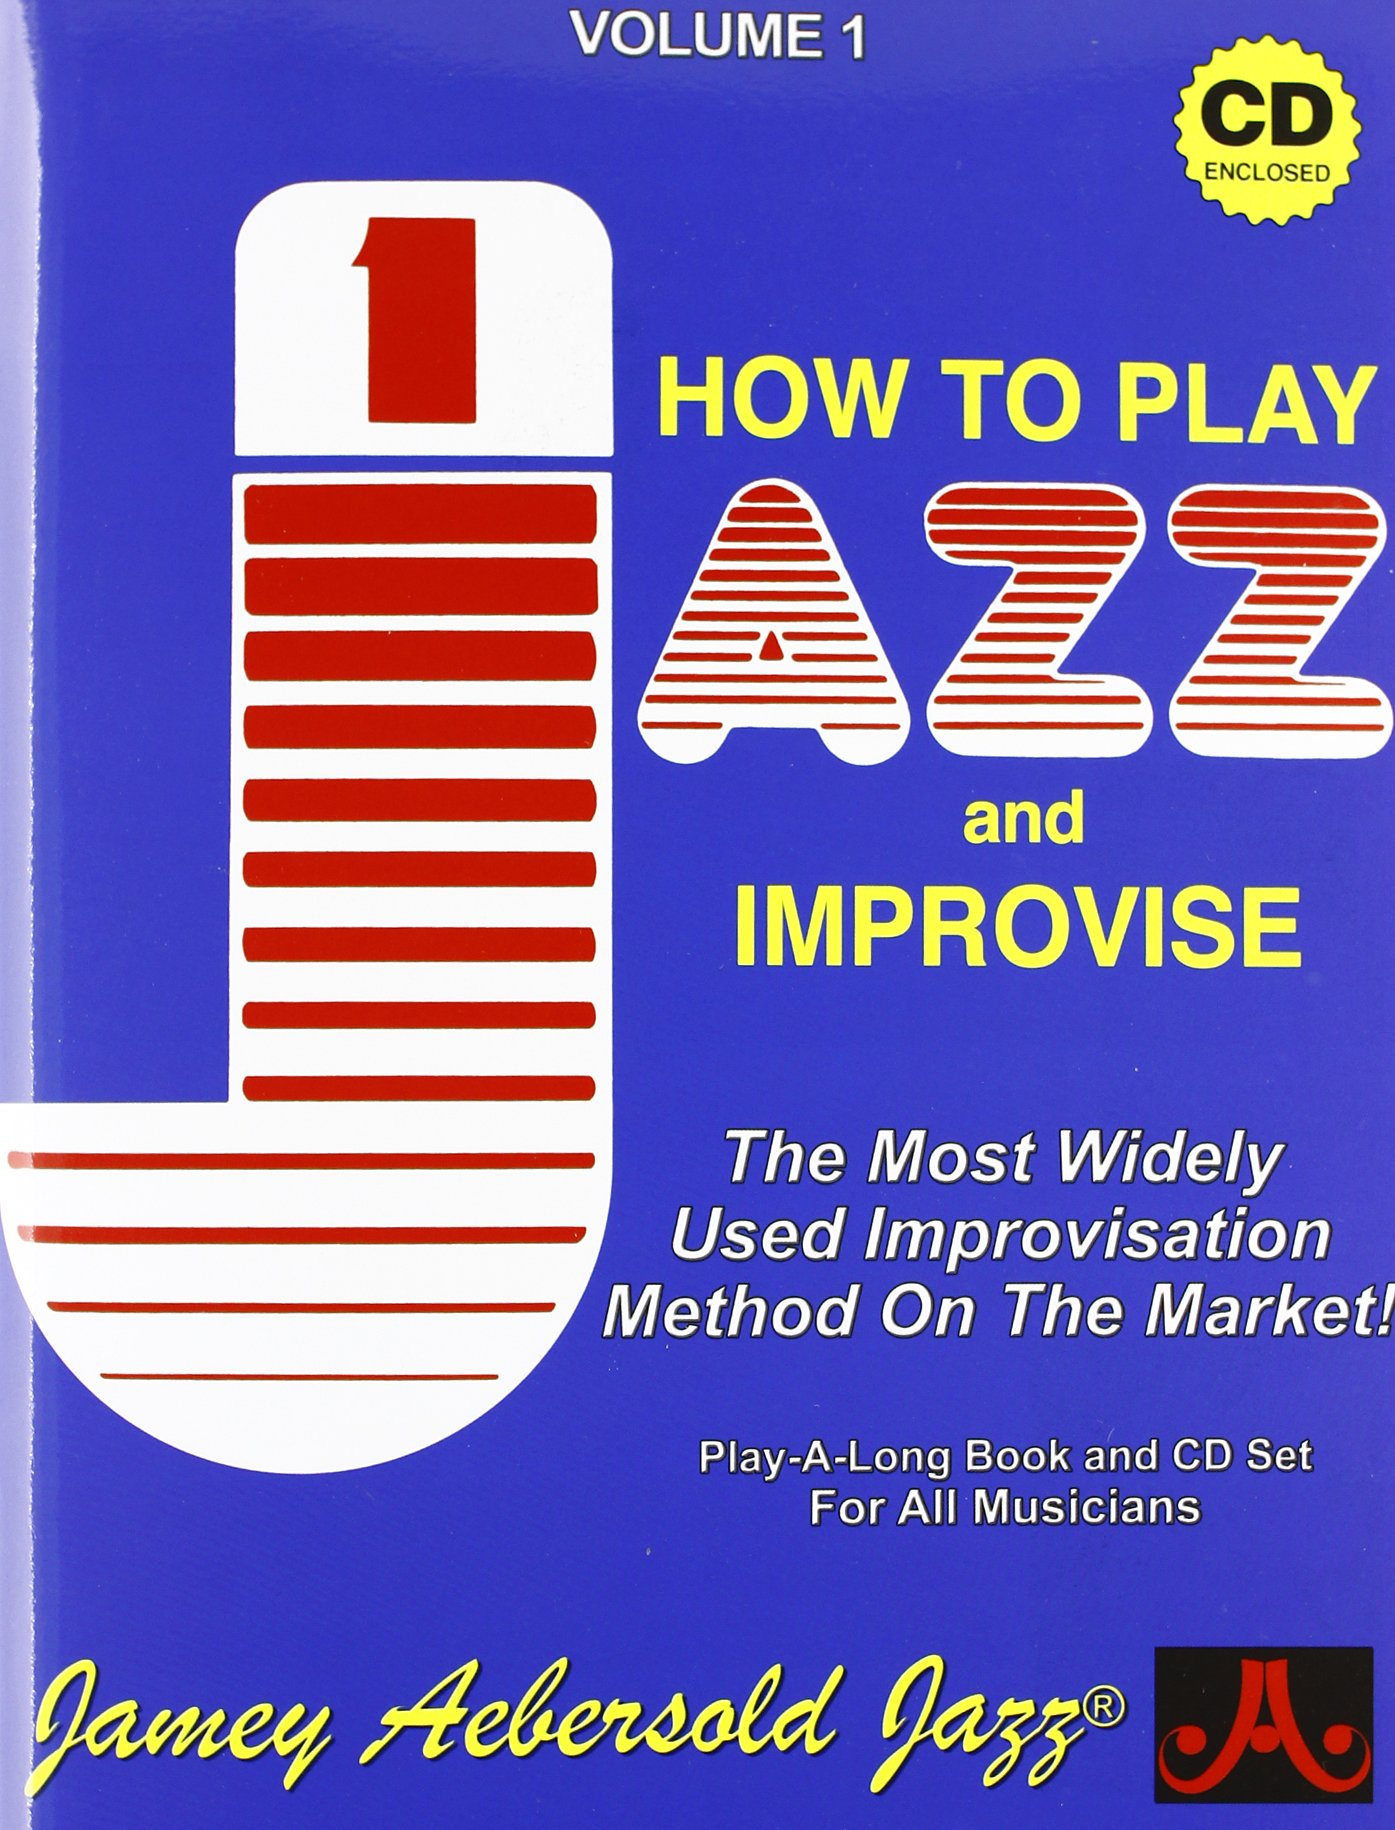 Vol. 1, How To Play Jazz & Improvise (Book & CD Set)